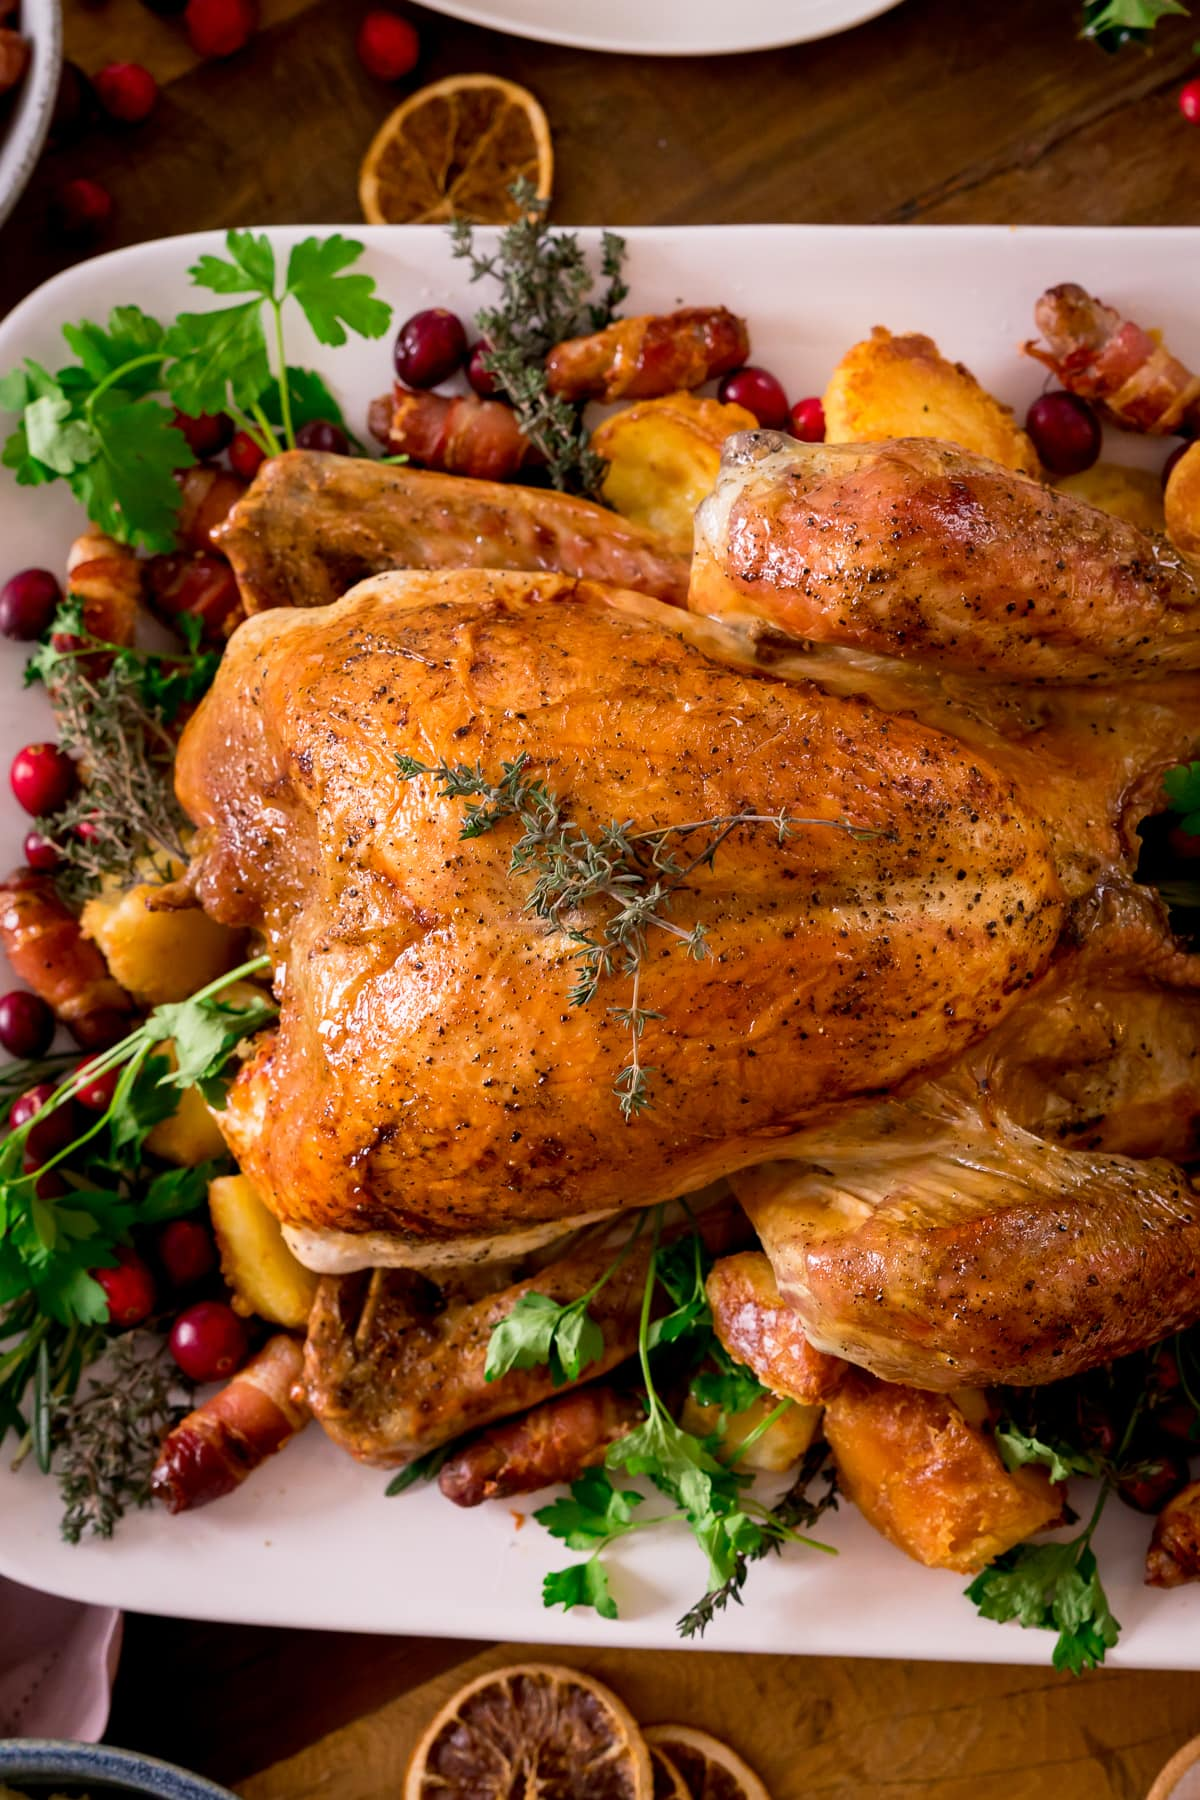 Roast turkey on a white plate surrounded by fresh herbs, cranberries and other garnishes.